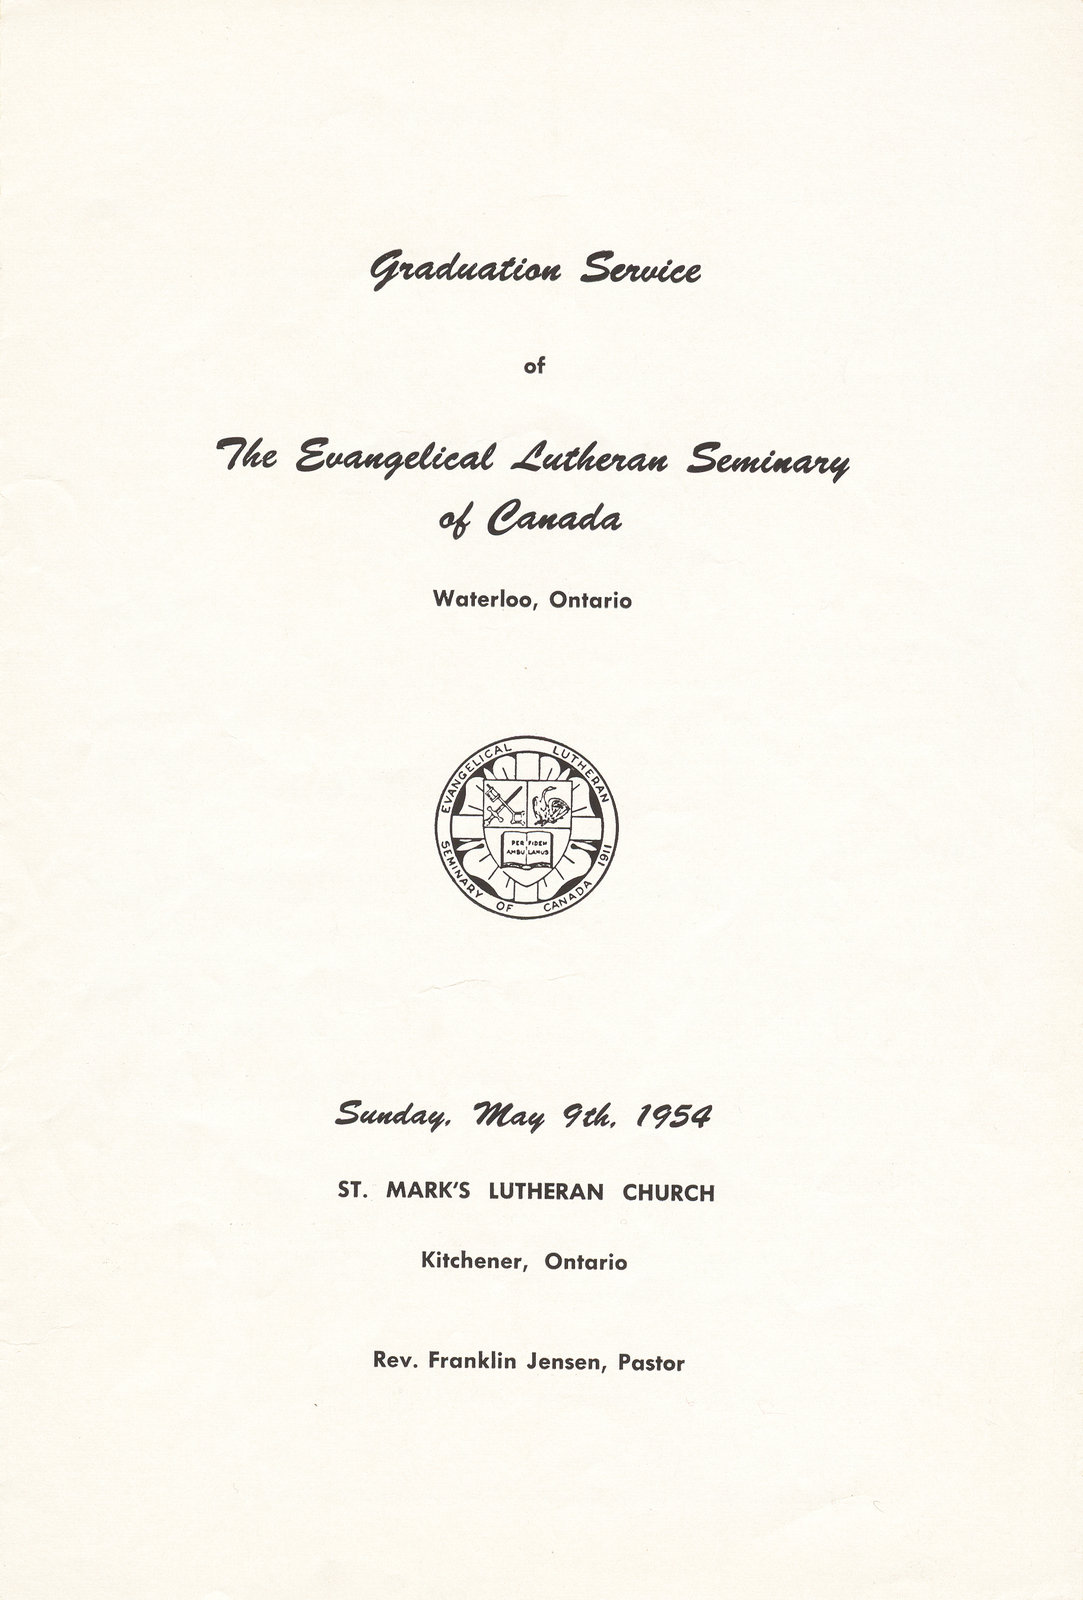 Graduation Service of the Evangelical Lutheran Seminary of Canada, 1954